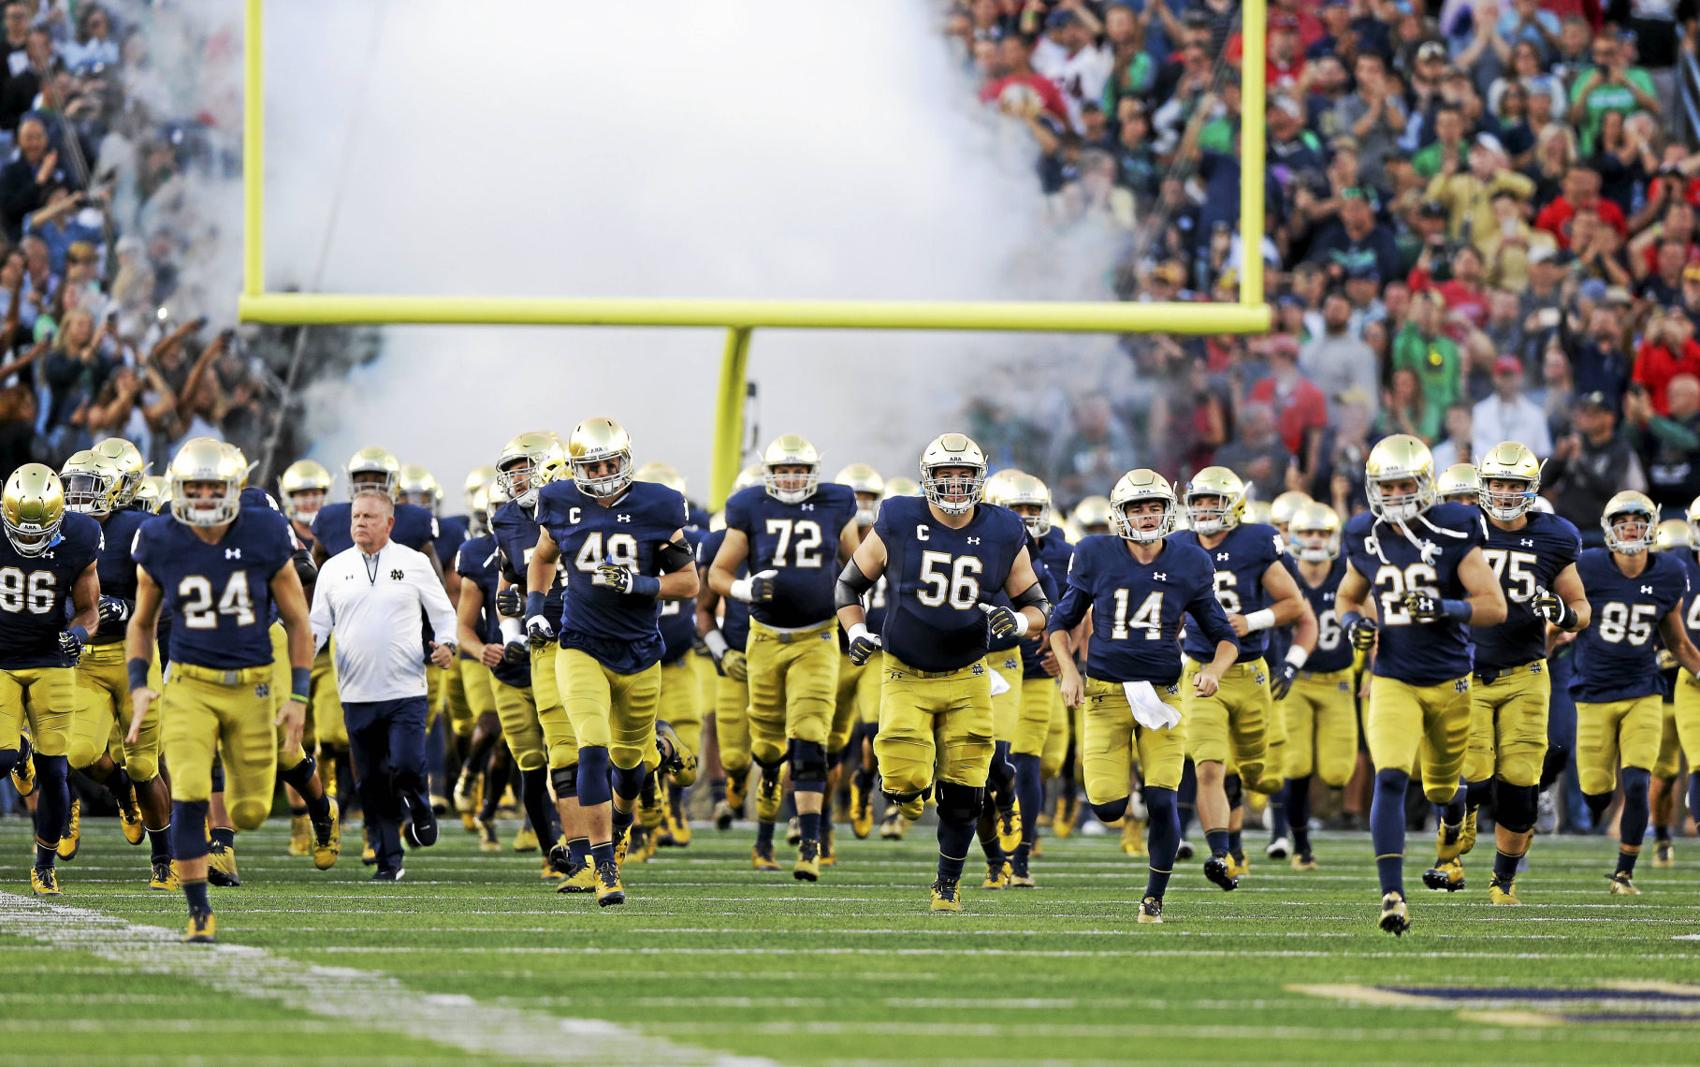 Nd Football Schedule 2020.Nd 2019 Football Schedule 2020 Notre Dame Football Schedule